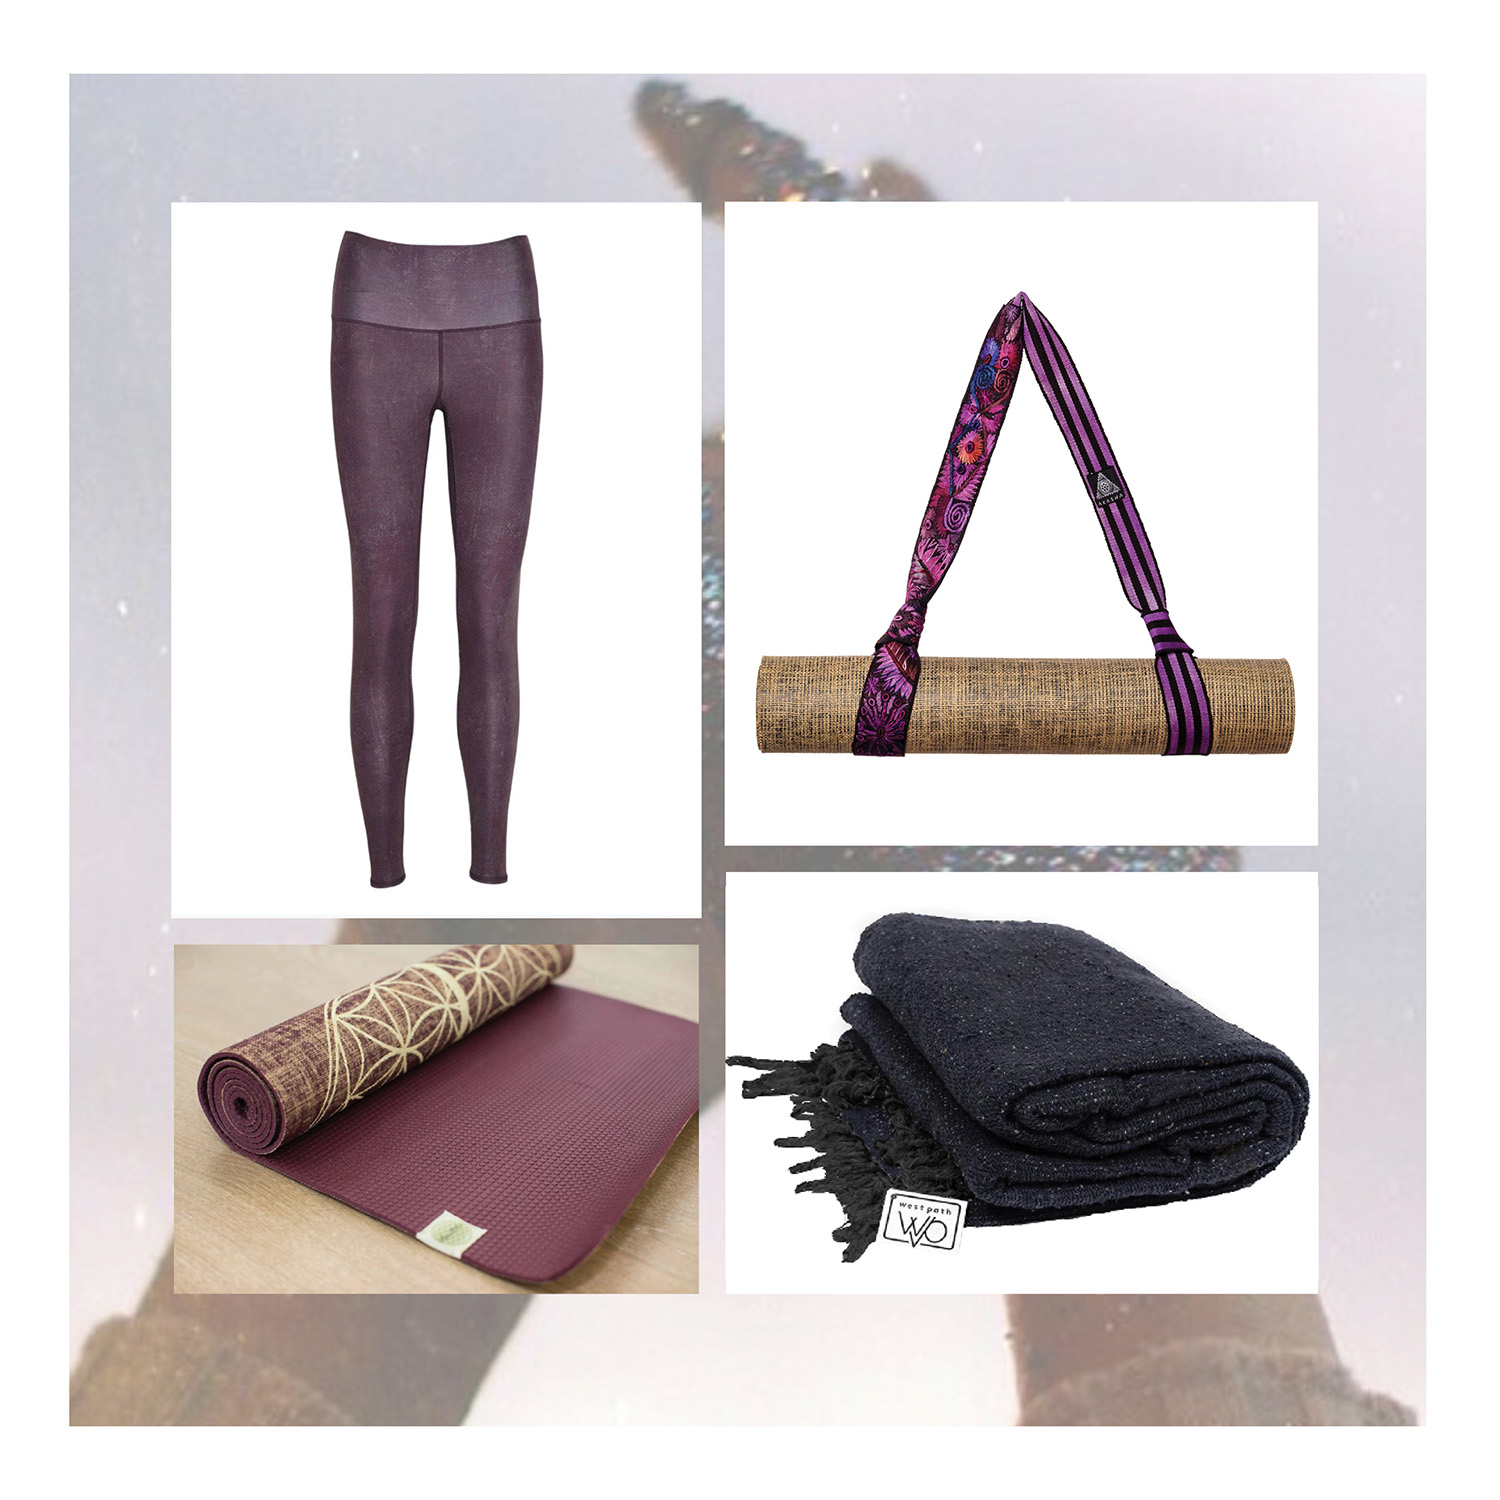 Moonchild Leggings  $95,  Akasha Yoga Strap  $89,  West Path Meditation Blanket  $70,  YogaTribe 100% Jute Mat  $120